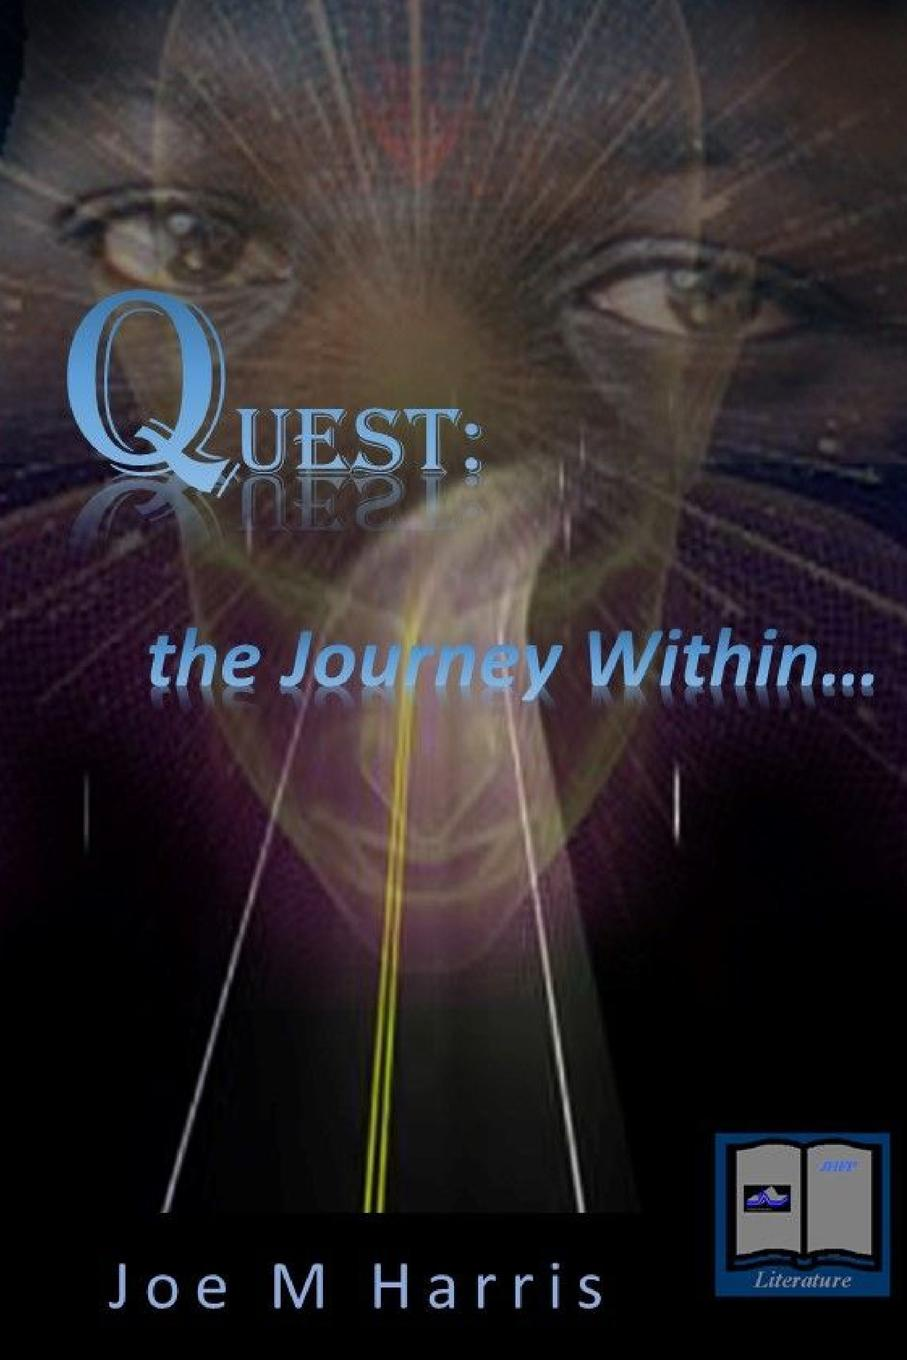 Joe M Harris Quest. the journey within... joe l lewis essence of the christian journey faith hope and love these three